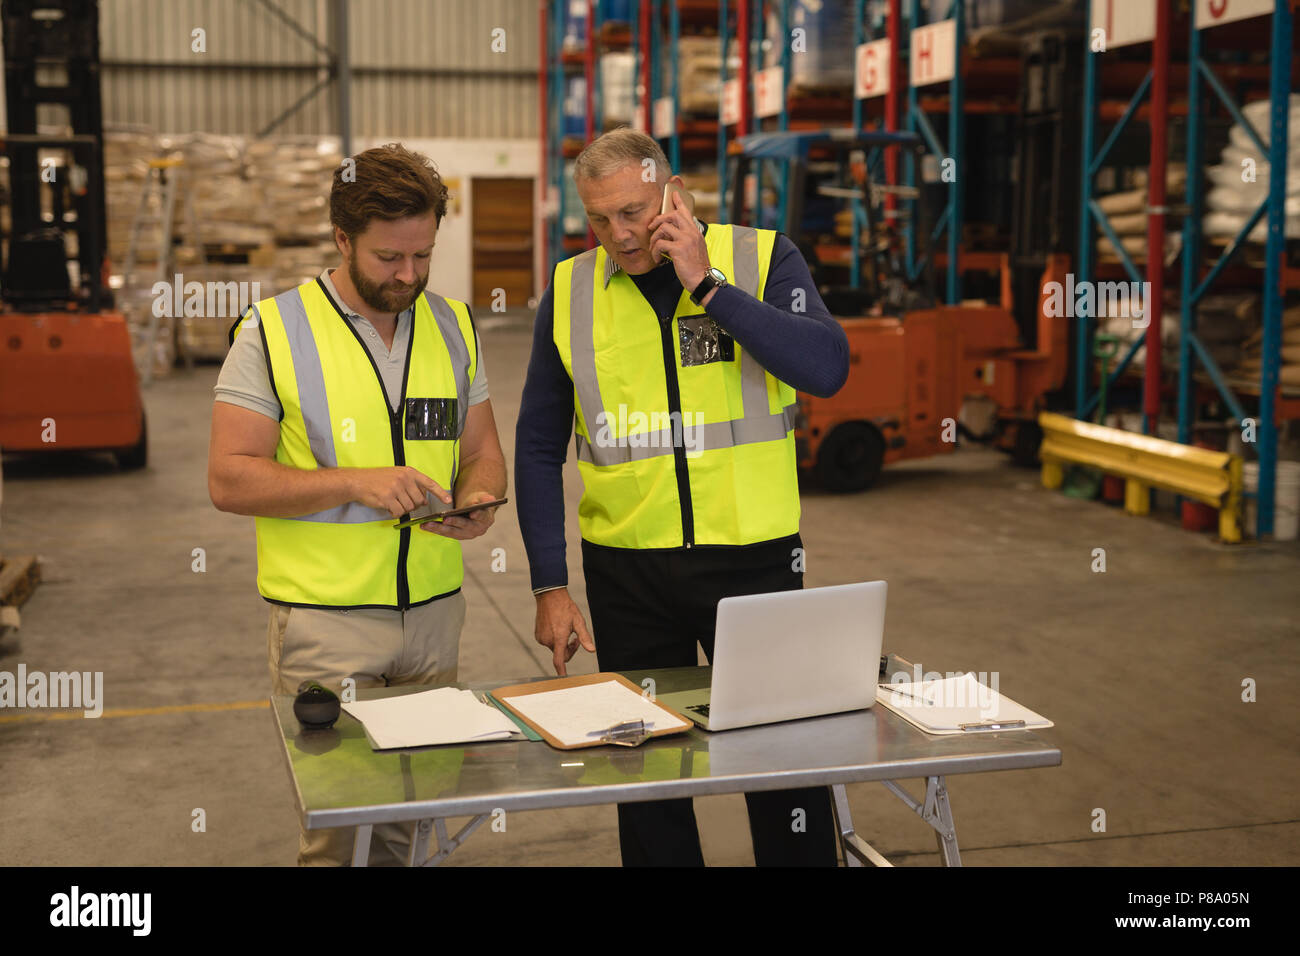 Male supervisors talking on mobile phone and using digital tablet - Stock Image